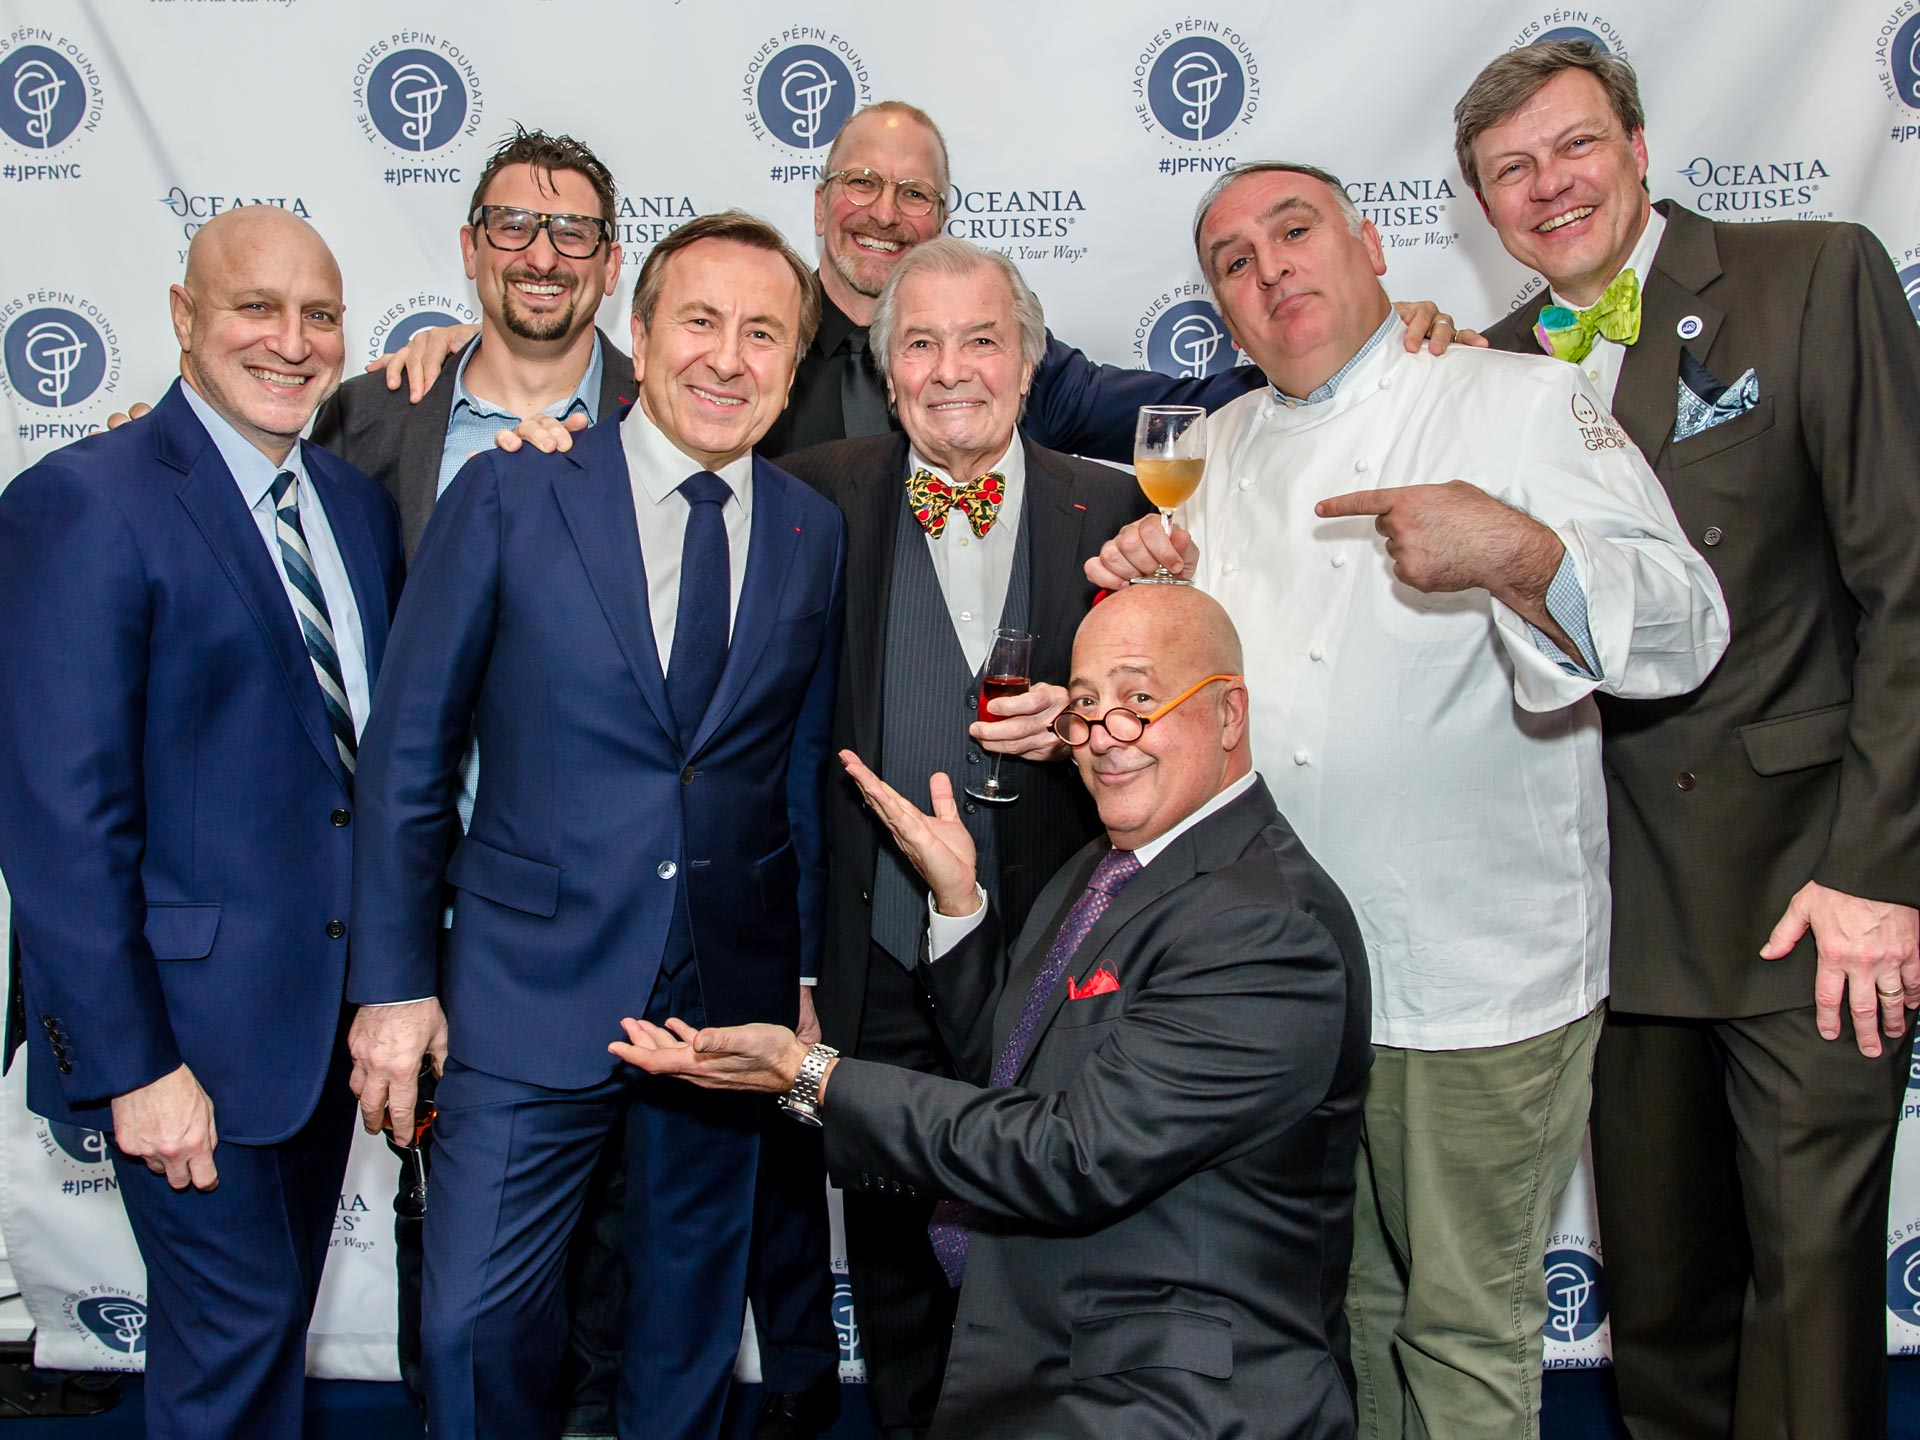 Tom Colicchio, Daniel Boulud, Jacques Pepin, Andrew Zimmern, Jose Andres